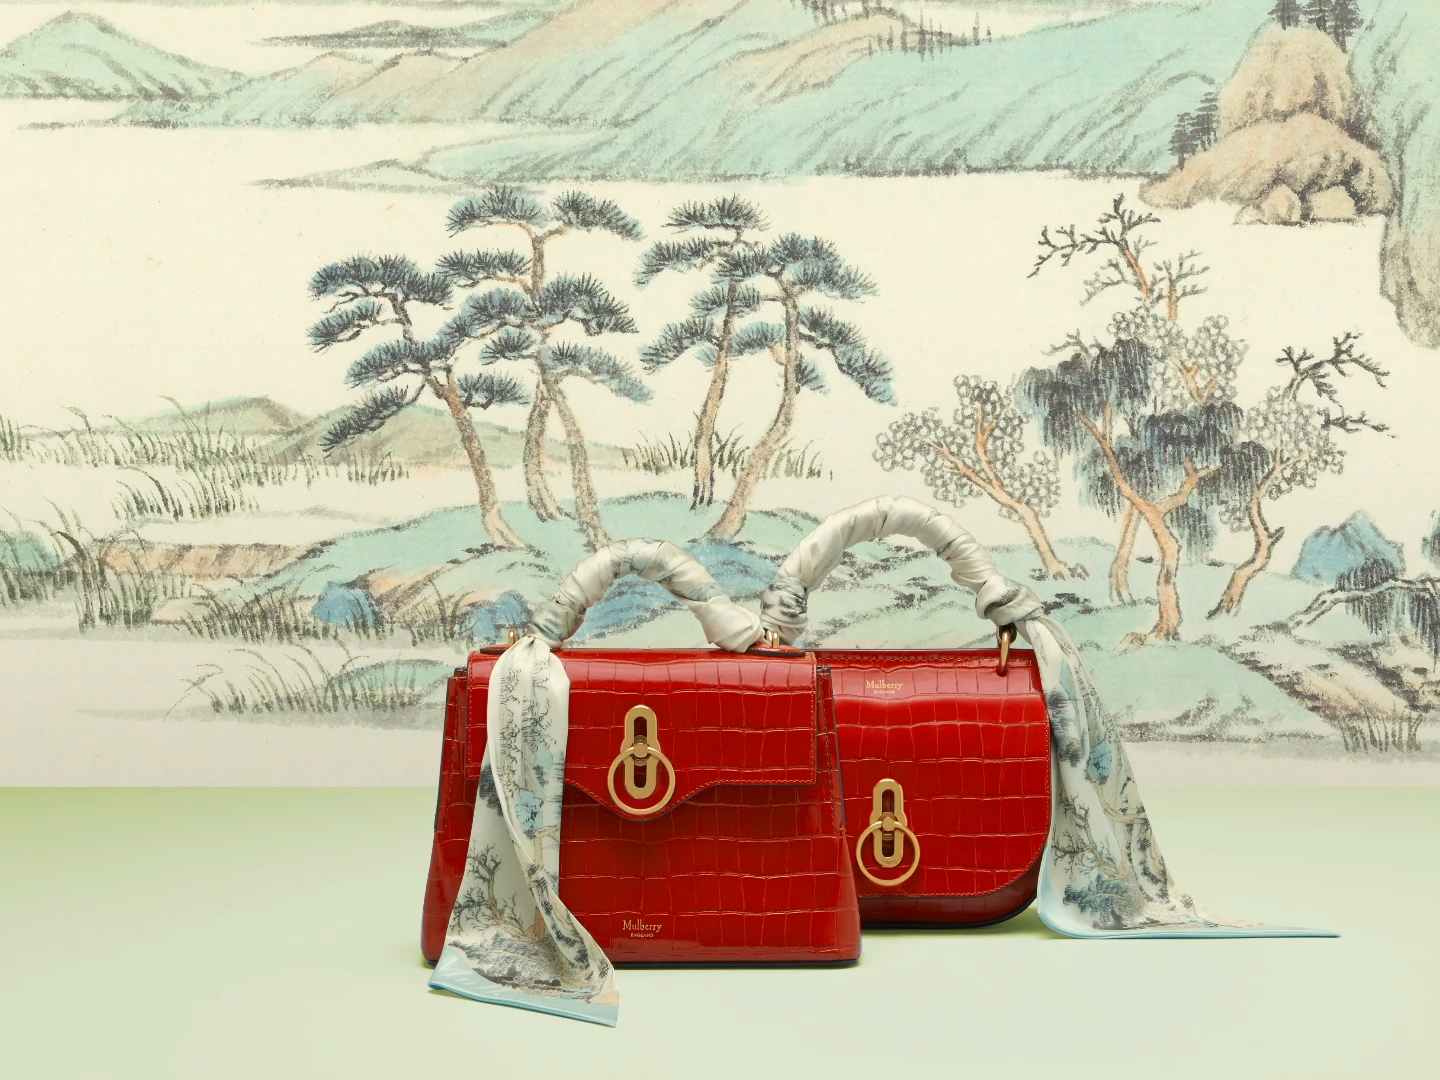 Mulberry 2019 Chinese New Year edition bags